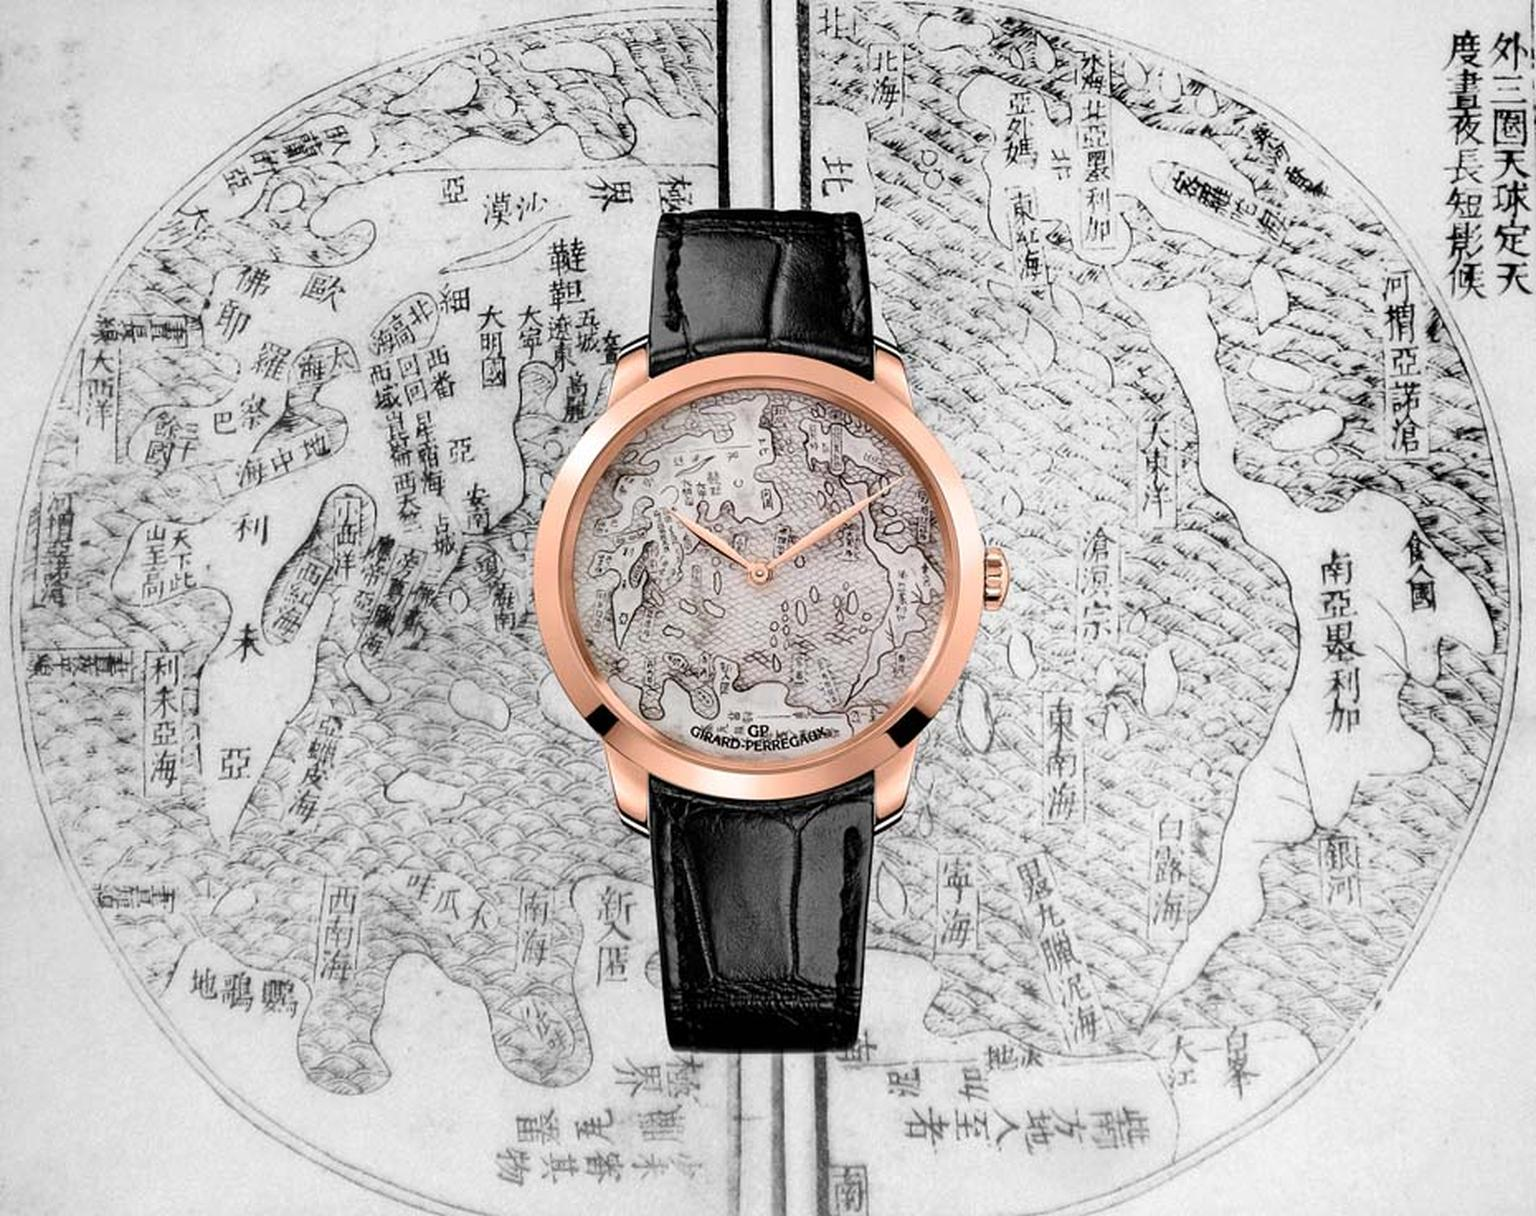 The Girard-Perregaux Terrestrial Map watch was inspired by a map drawn by the Italian Jesuit Matteo Ricci, who spent most of his life in China, translating global geographic knowledge of the 16th century for his hosts by repositioning China as the centre